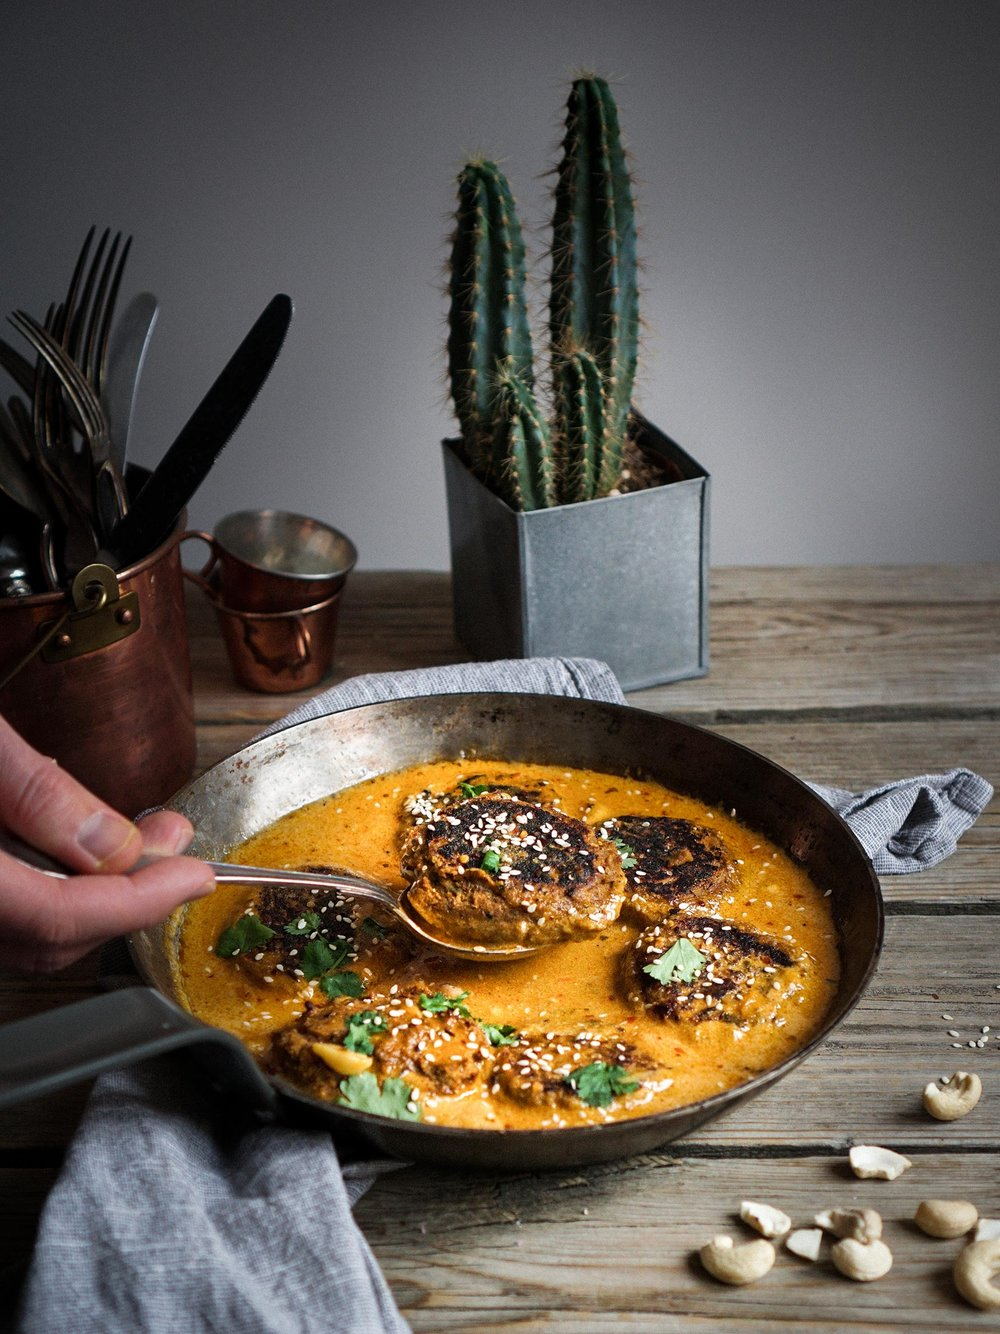 Indian sweet potato and lentil patties in a creamy cumin and coconut sauce - 45 min • 18-20 patties • Gluten-free